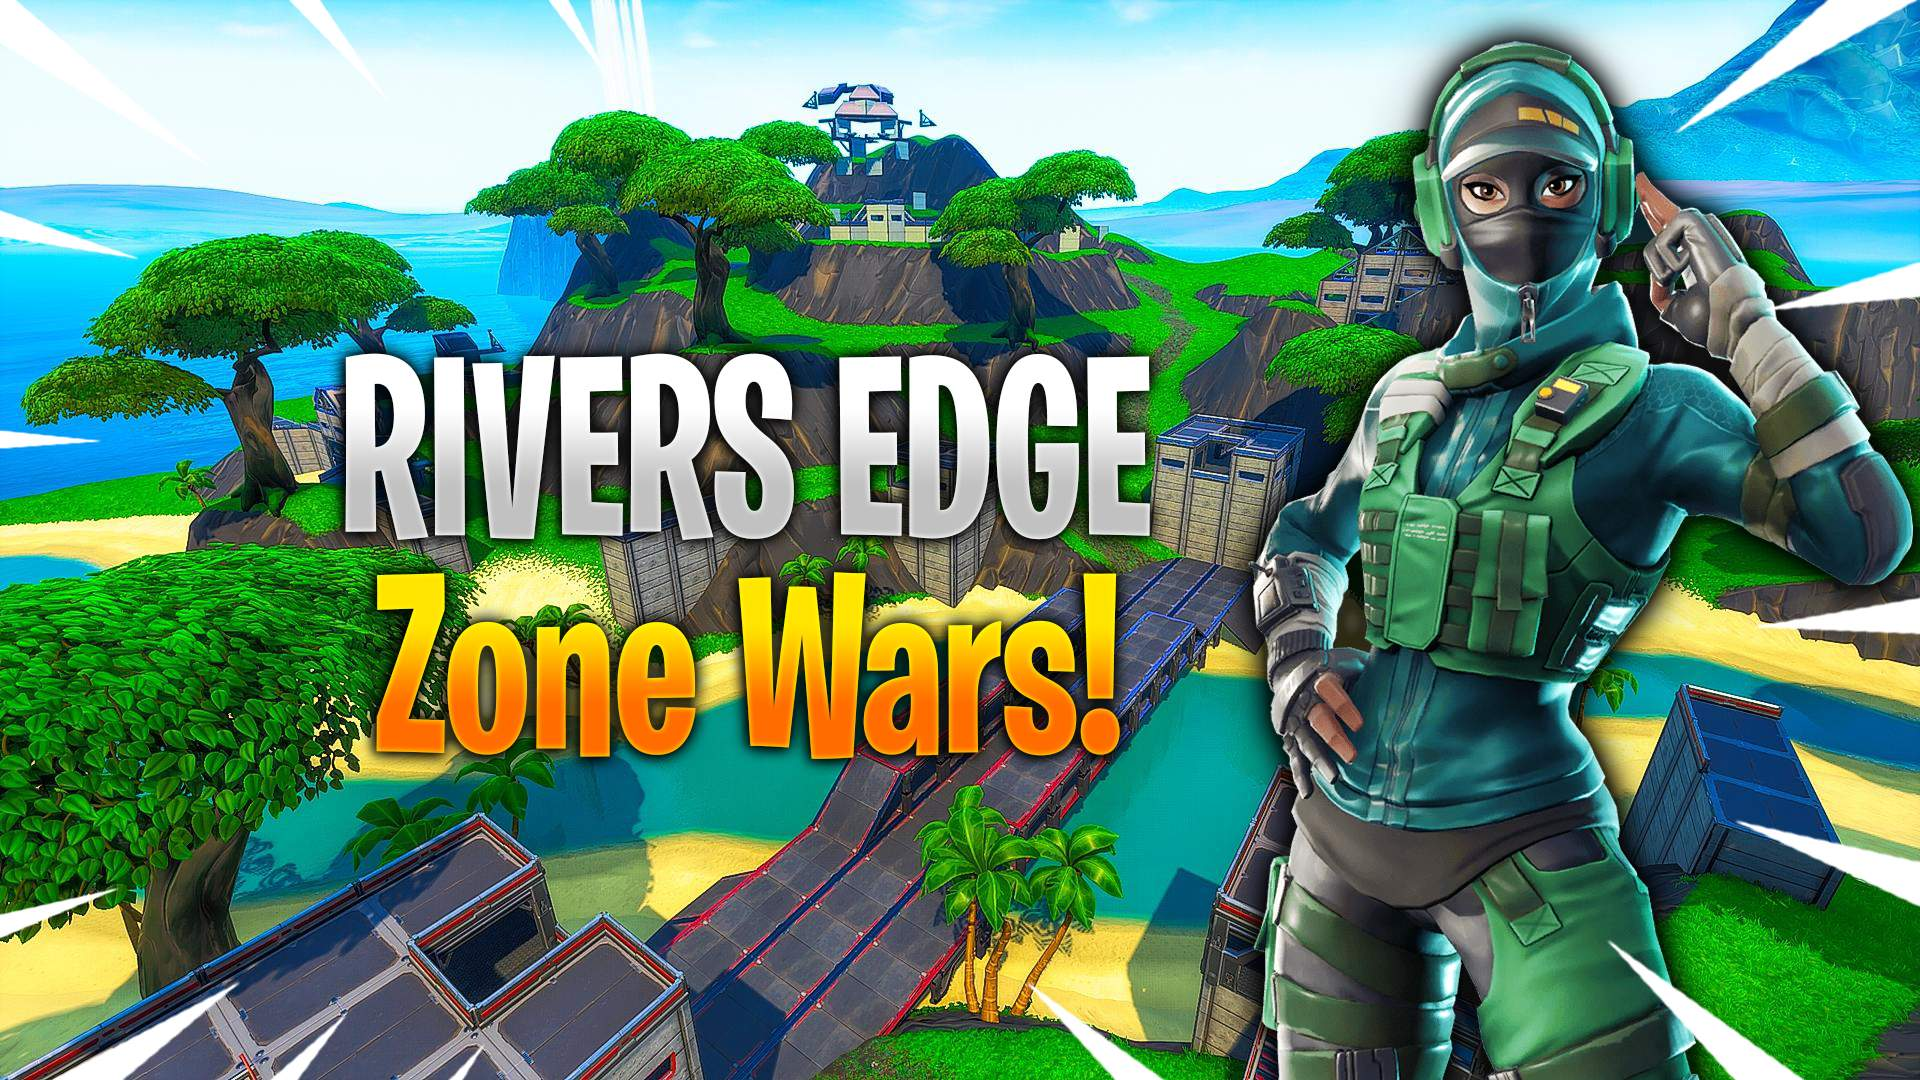 RIVERS EDGE ZONE WARS WITH ARENA SCORING